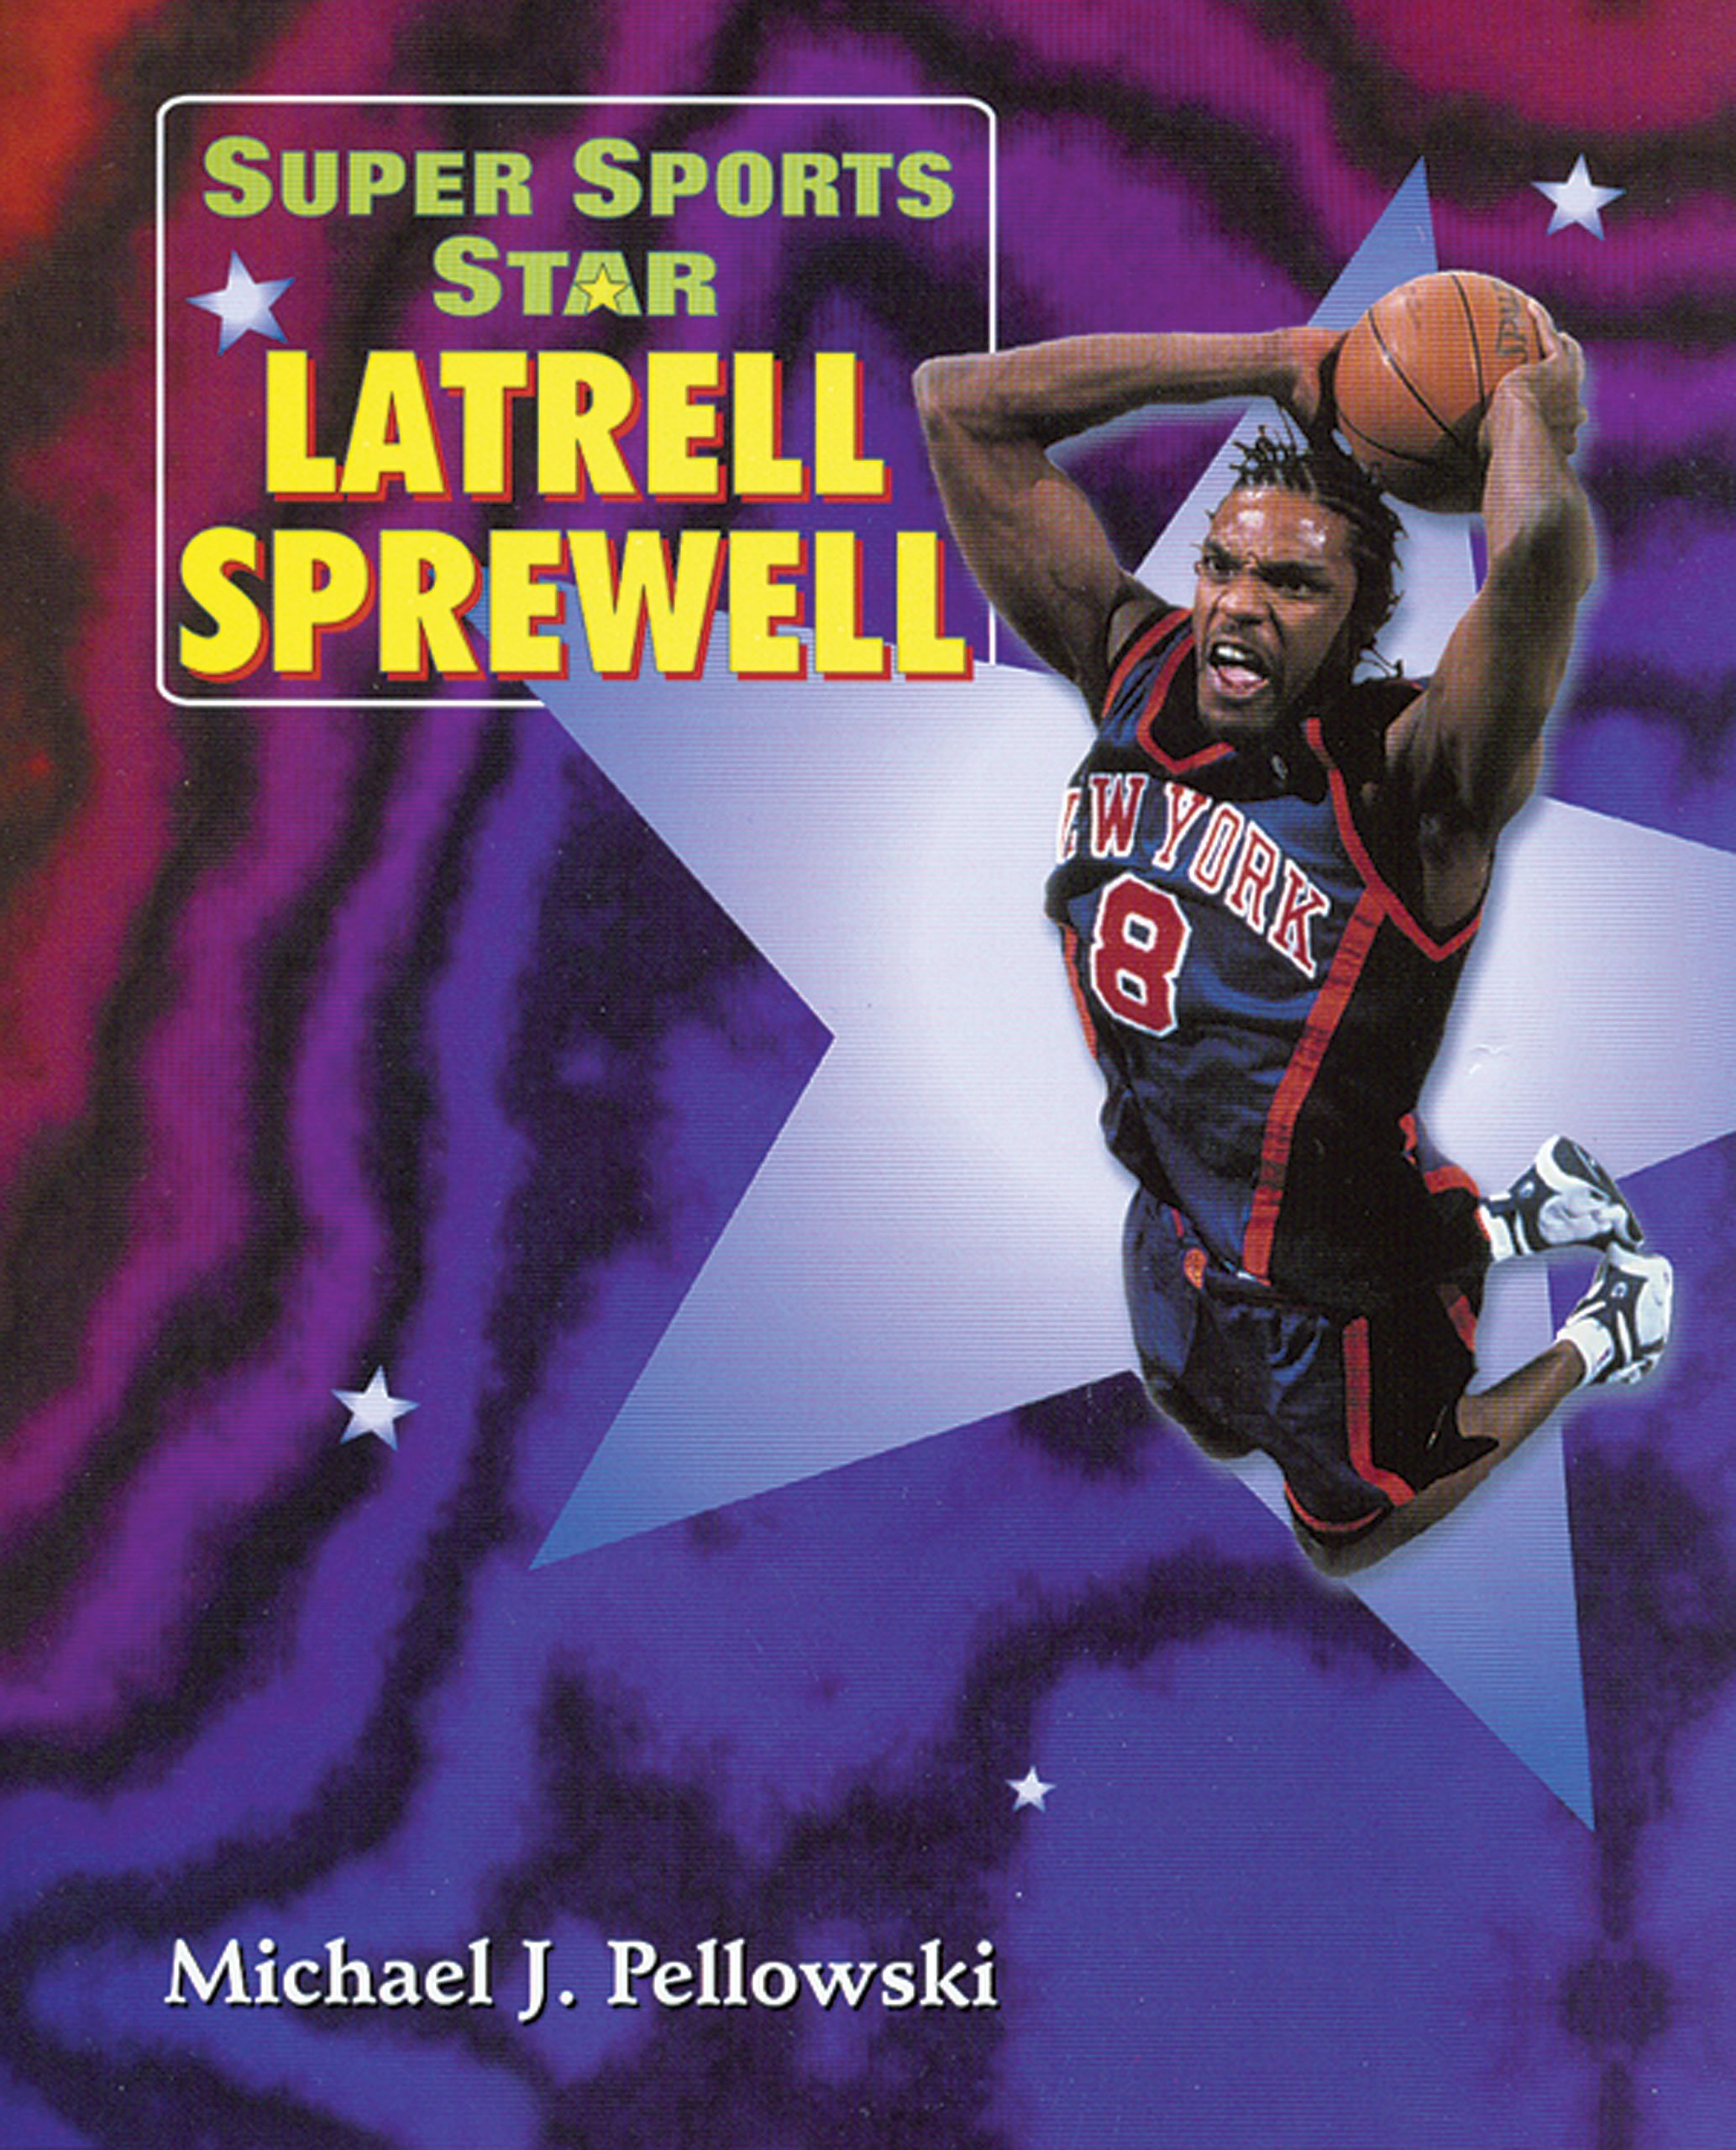 Latrell Sprewell (Super Sports Star)